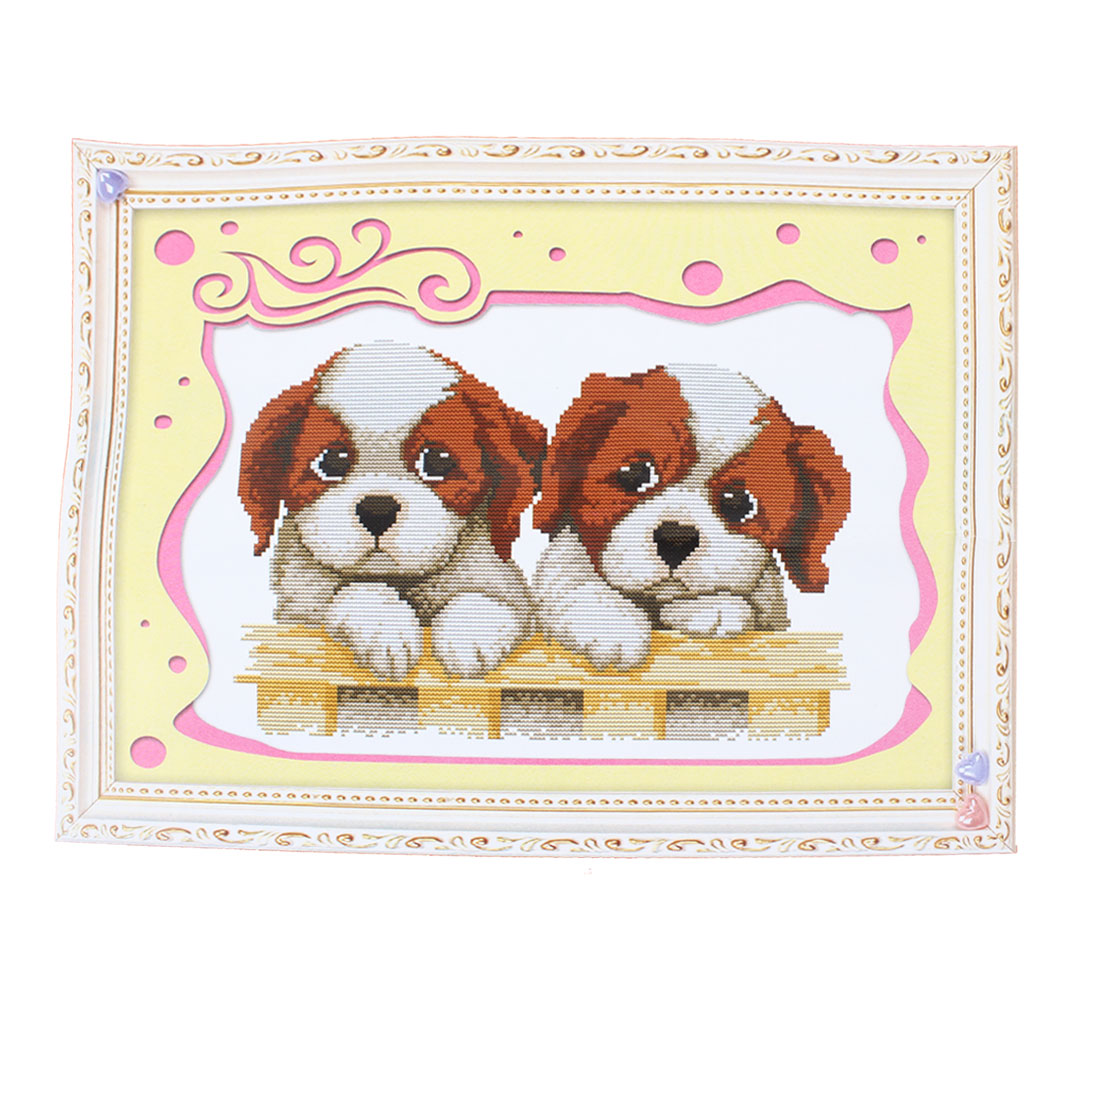 Two Dog Printed Stamped Cross Stitch Counted Gift Handmade for Lady